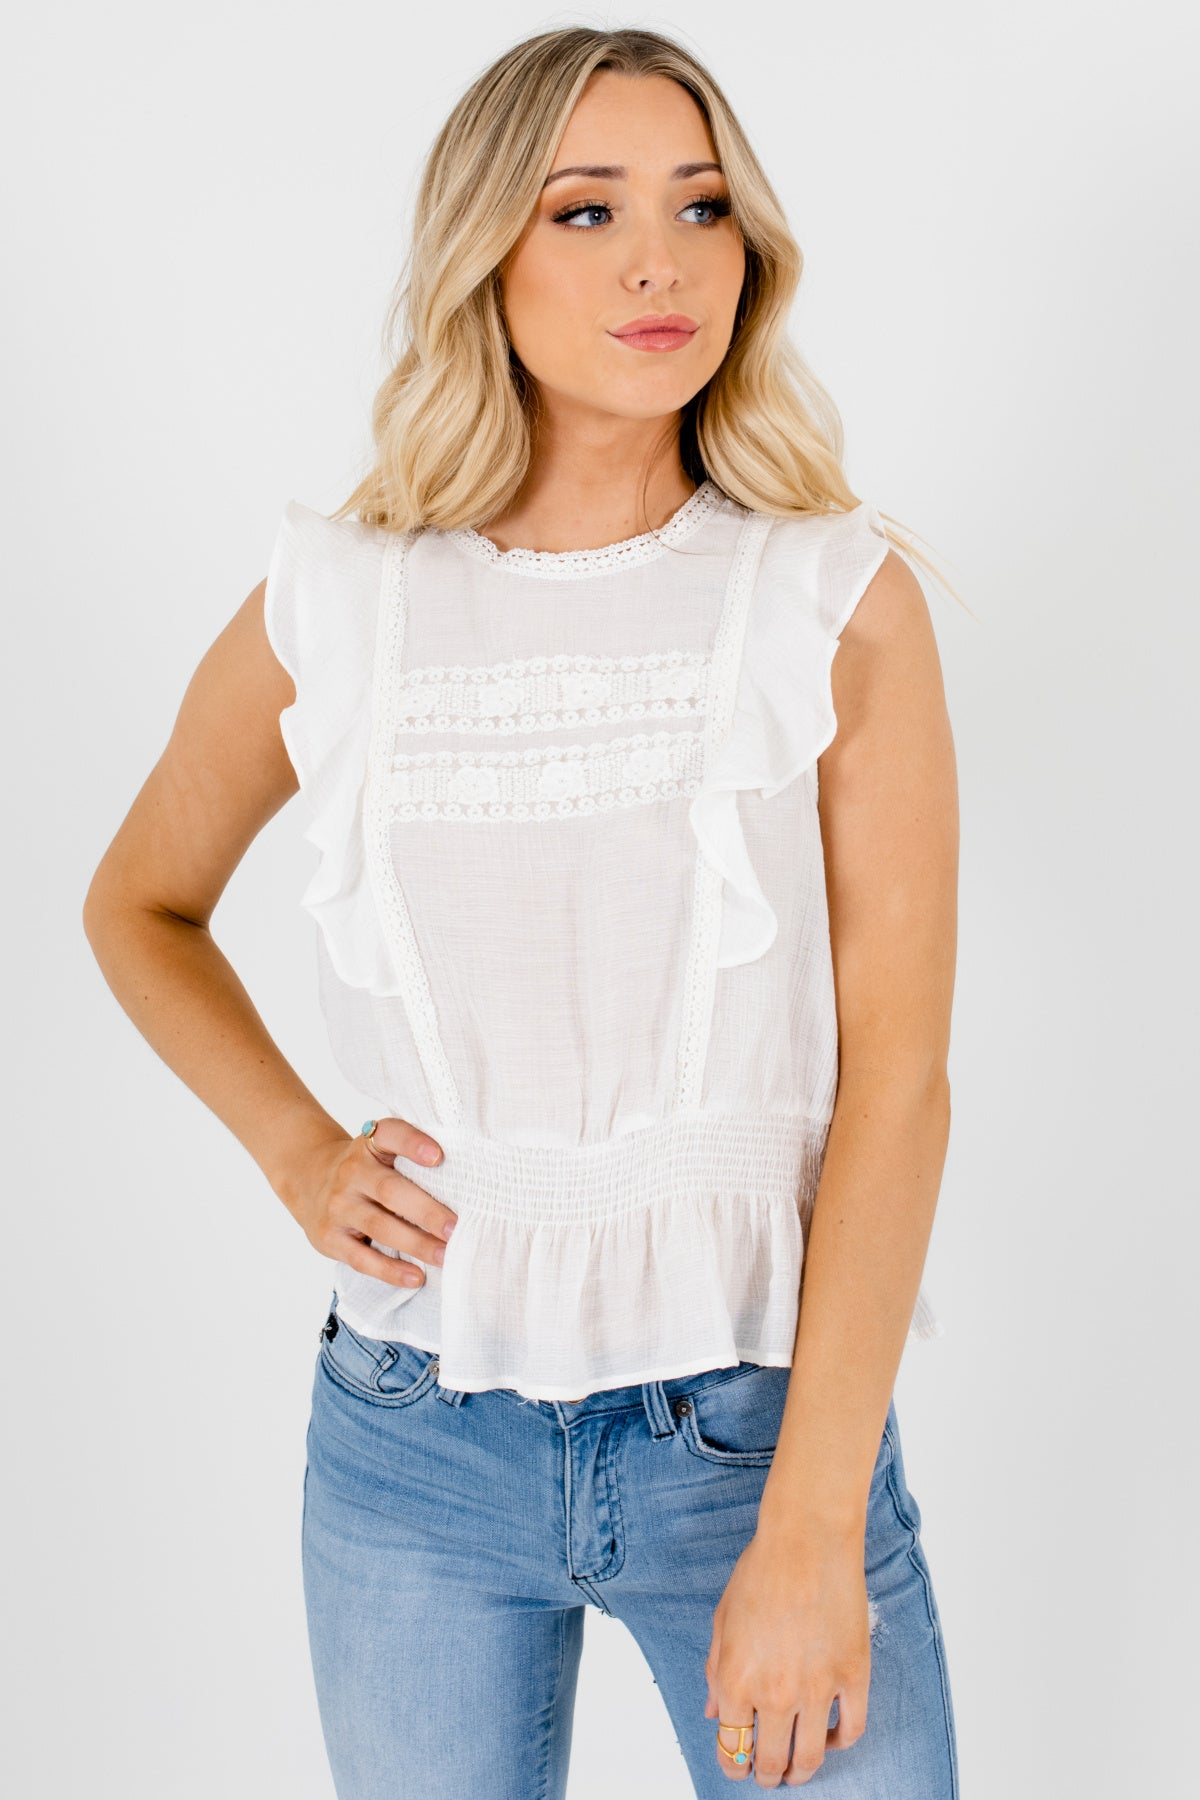 White Ruffle Sleeve Smocked Peplum Lace Tops Affordable Online Boutique